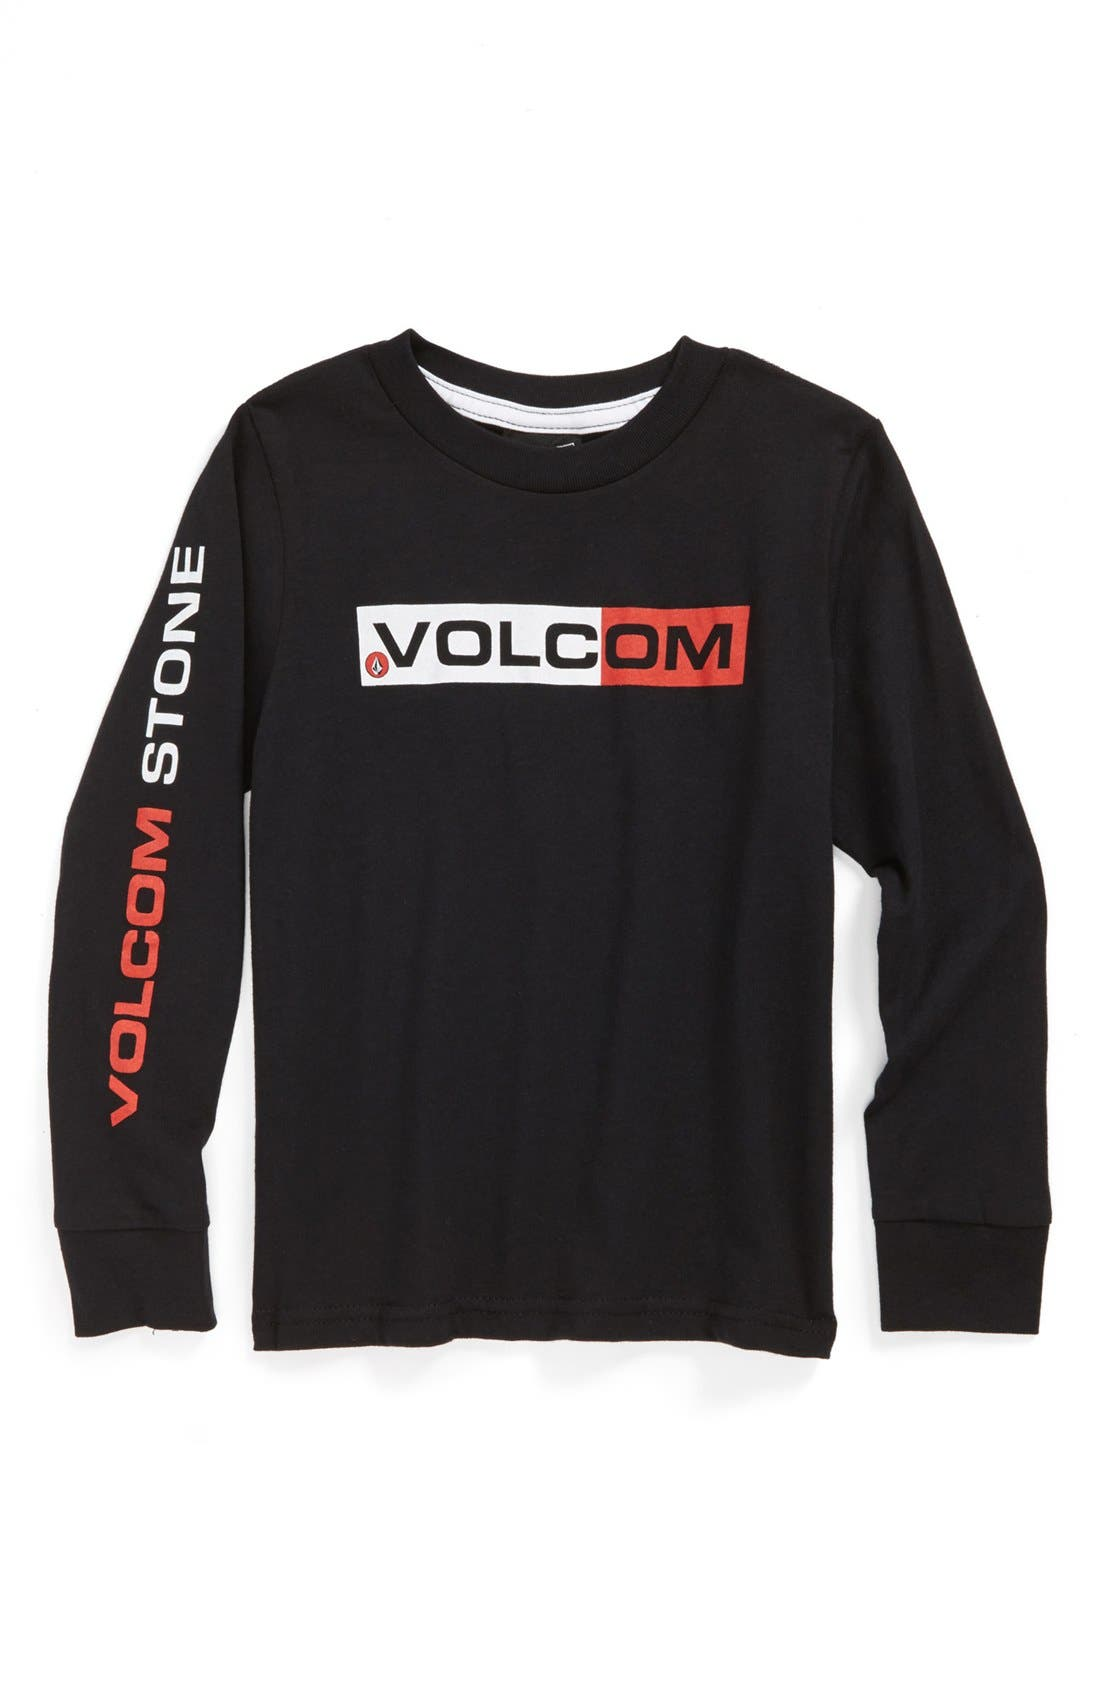 Main Image - Volcom 'Euro Styling' Long Sleeve T-Shirt (Big Boys)